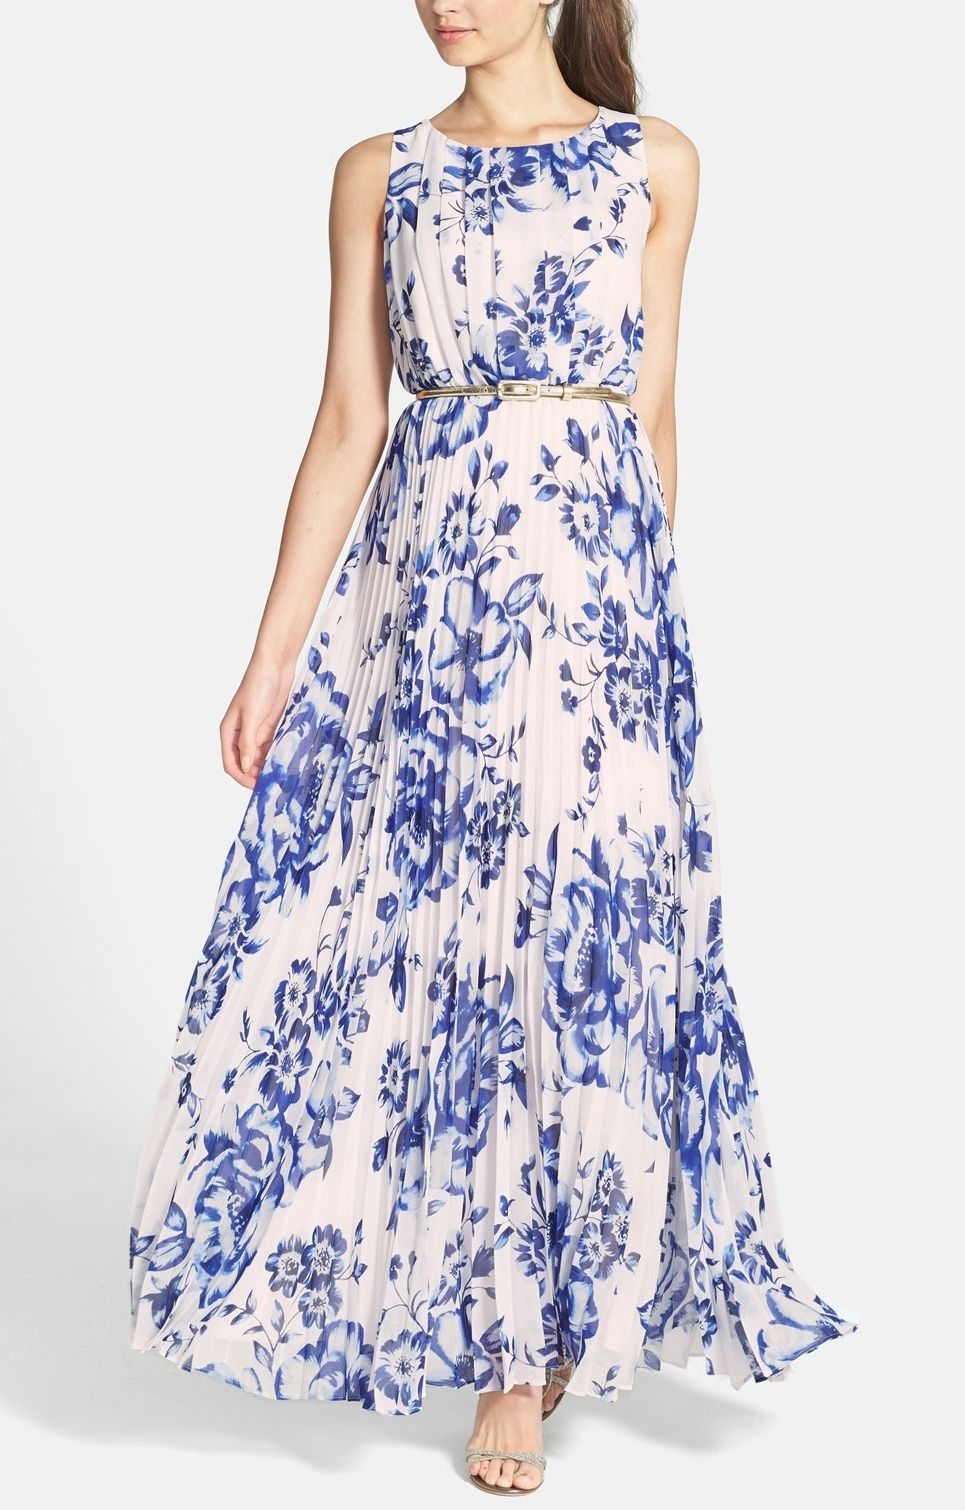 c18a220b8a6d9 So breezy and gorgeous! This chiffon maxi dress from Eliza J would ...